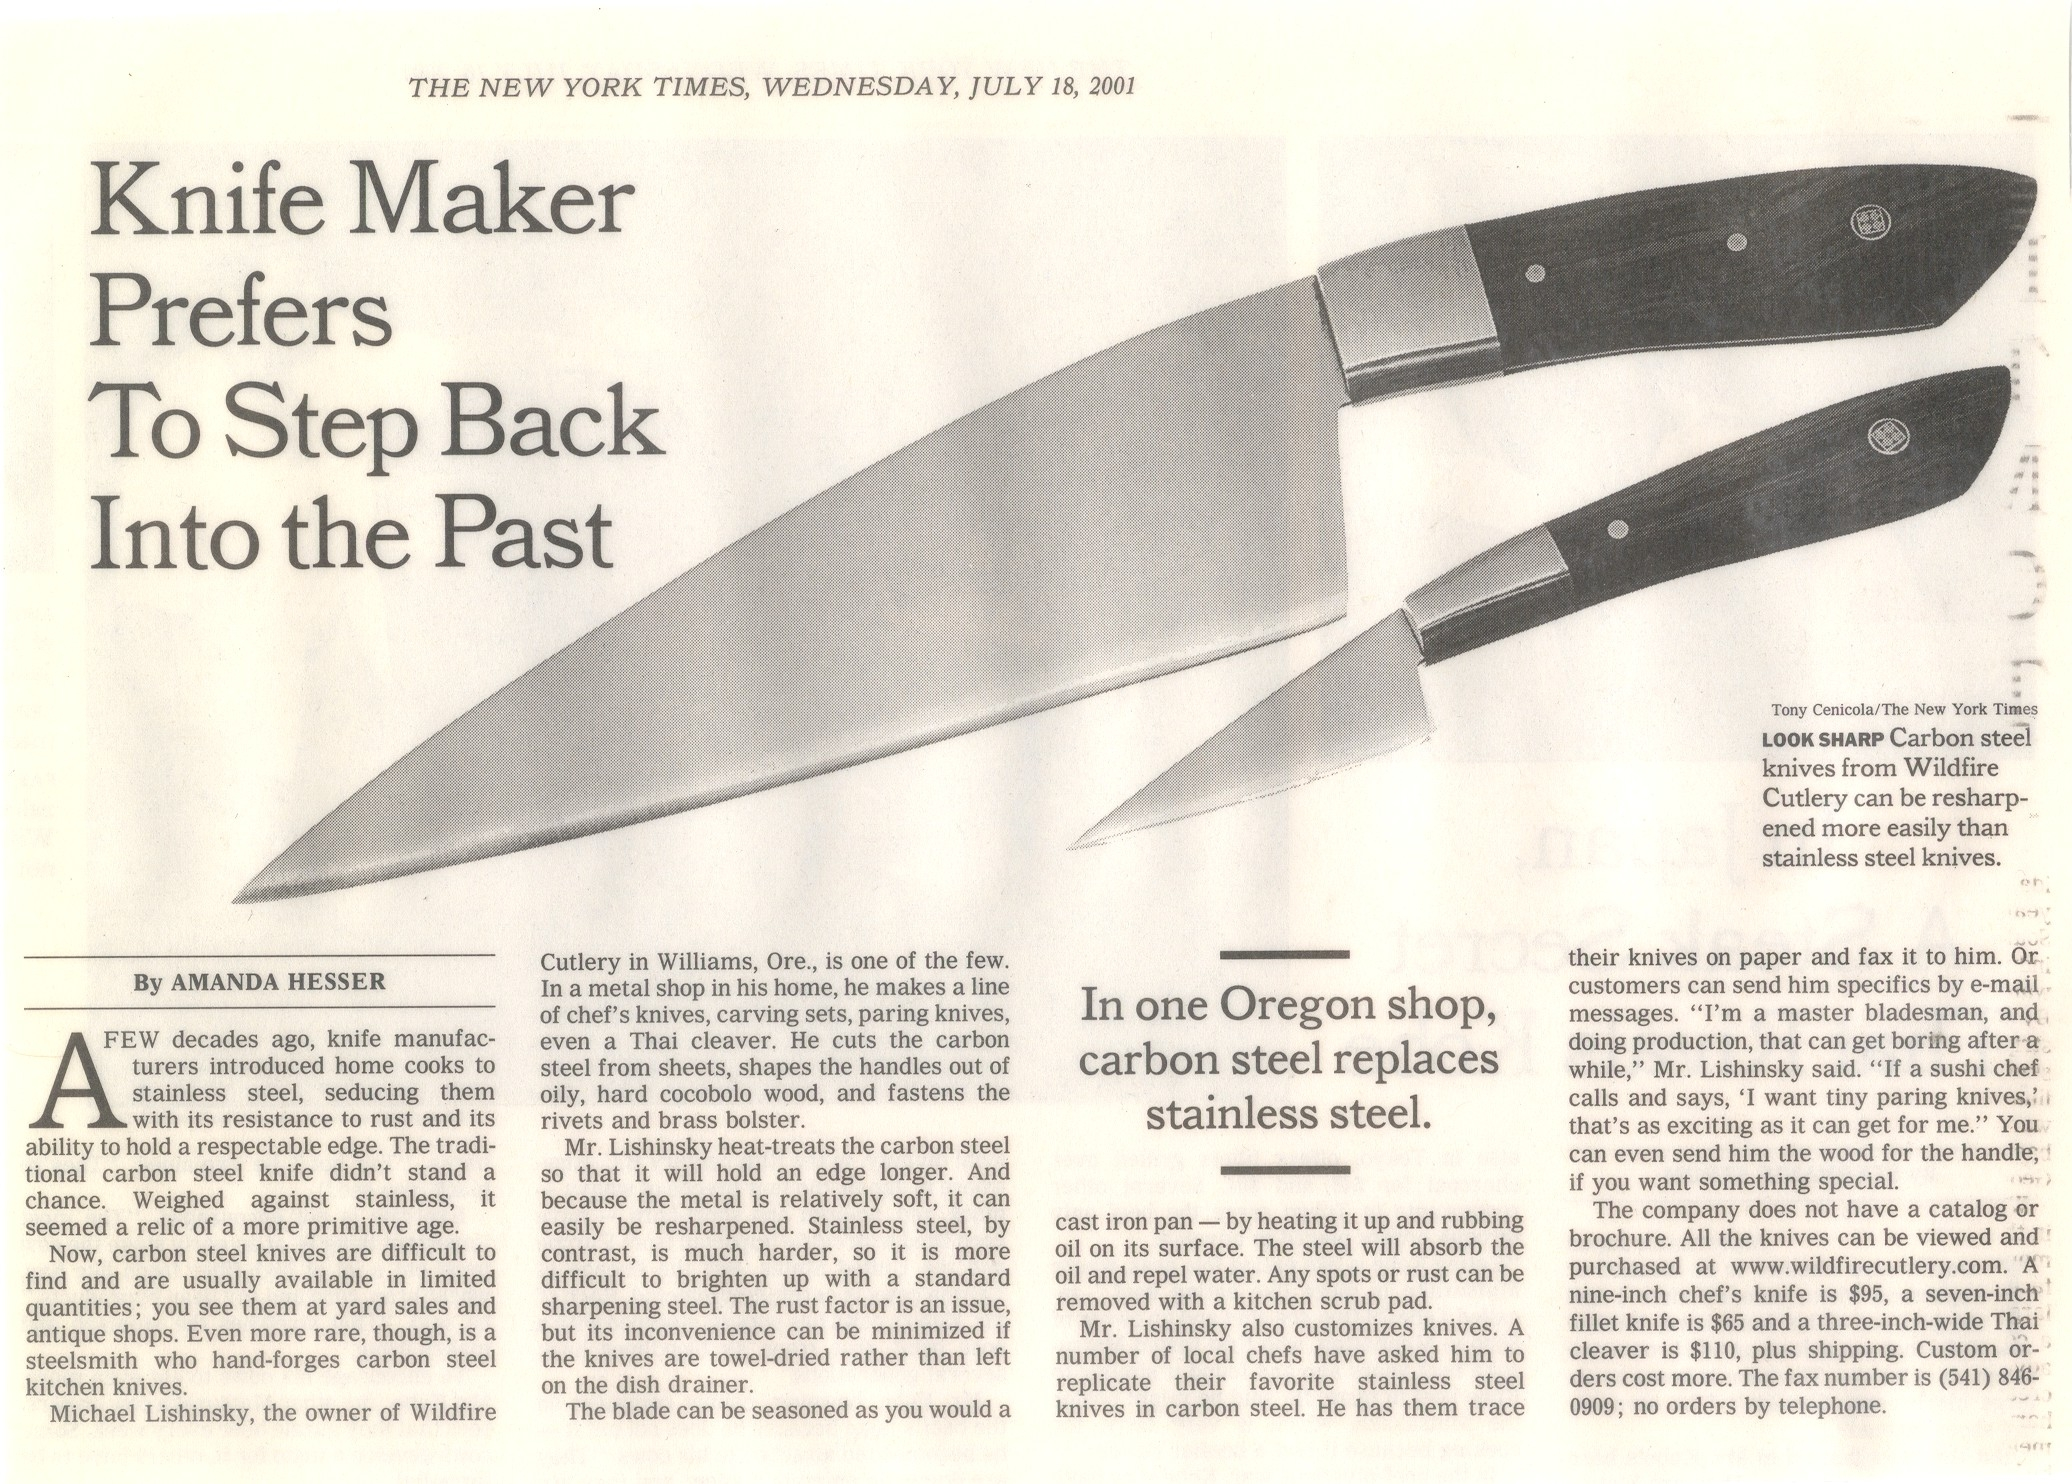 Knife Media Media Stories About The Carbon Steel Kitchen Knives Made By